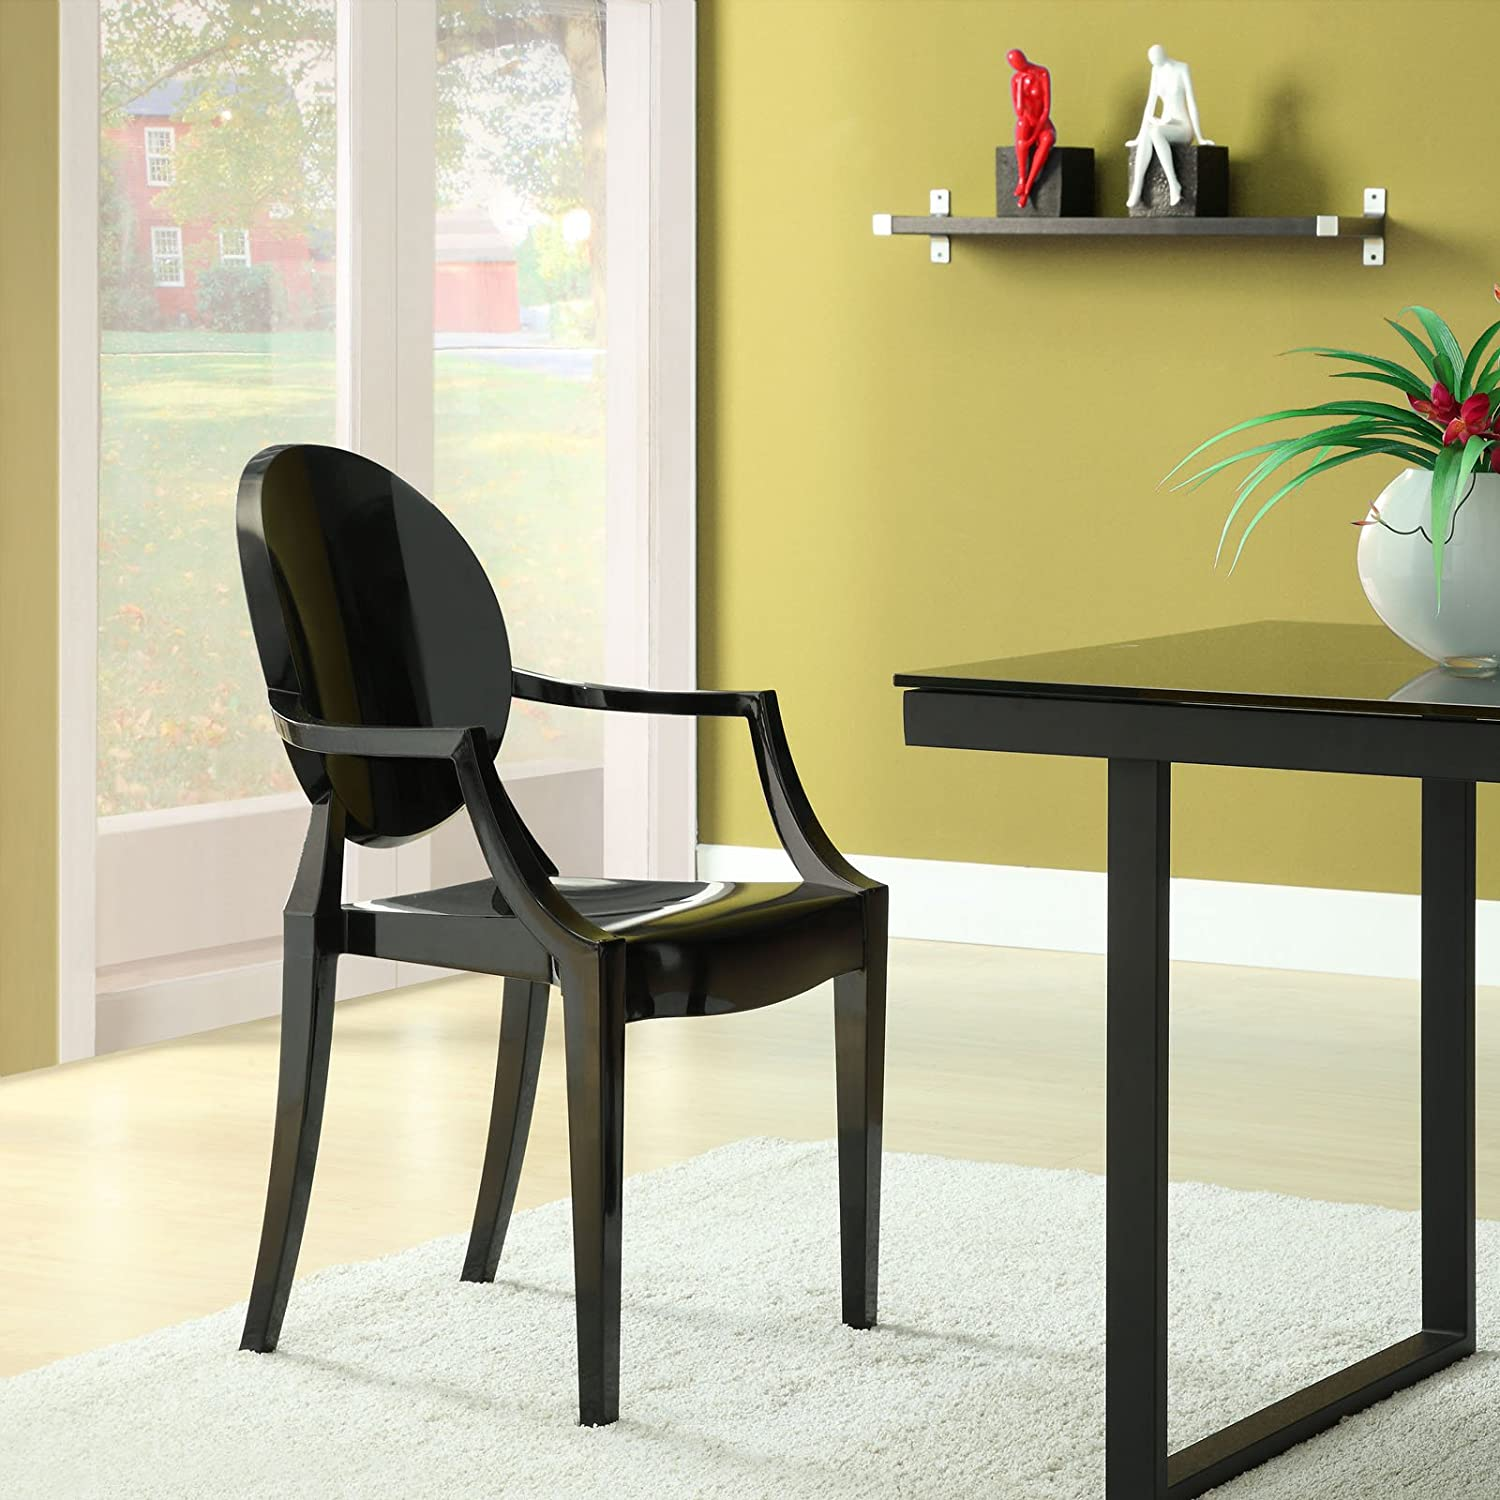 Amazon Modway Casper Modern Acrylic Dining Armchair in Black